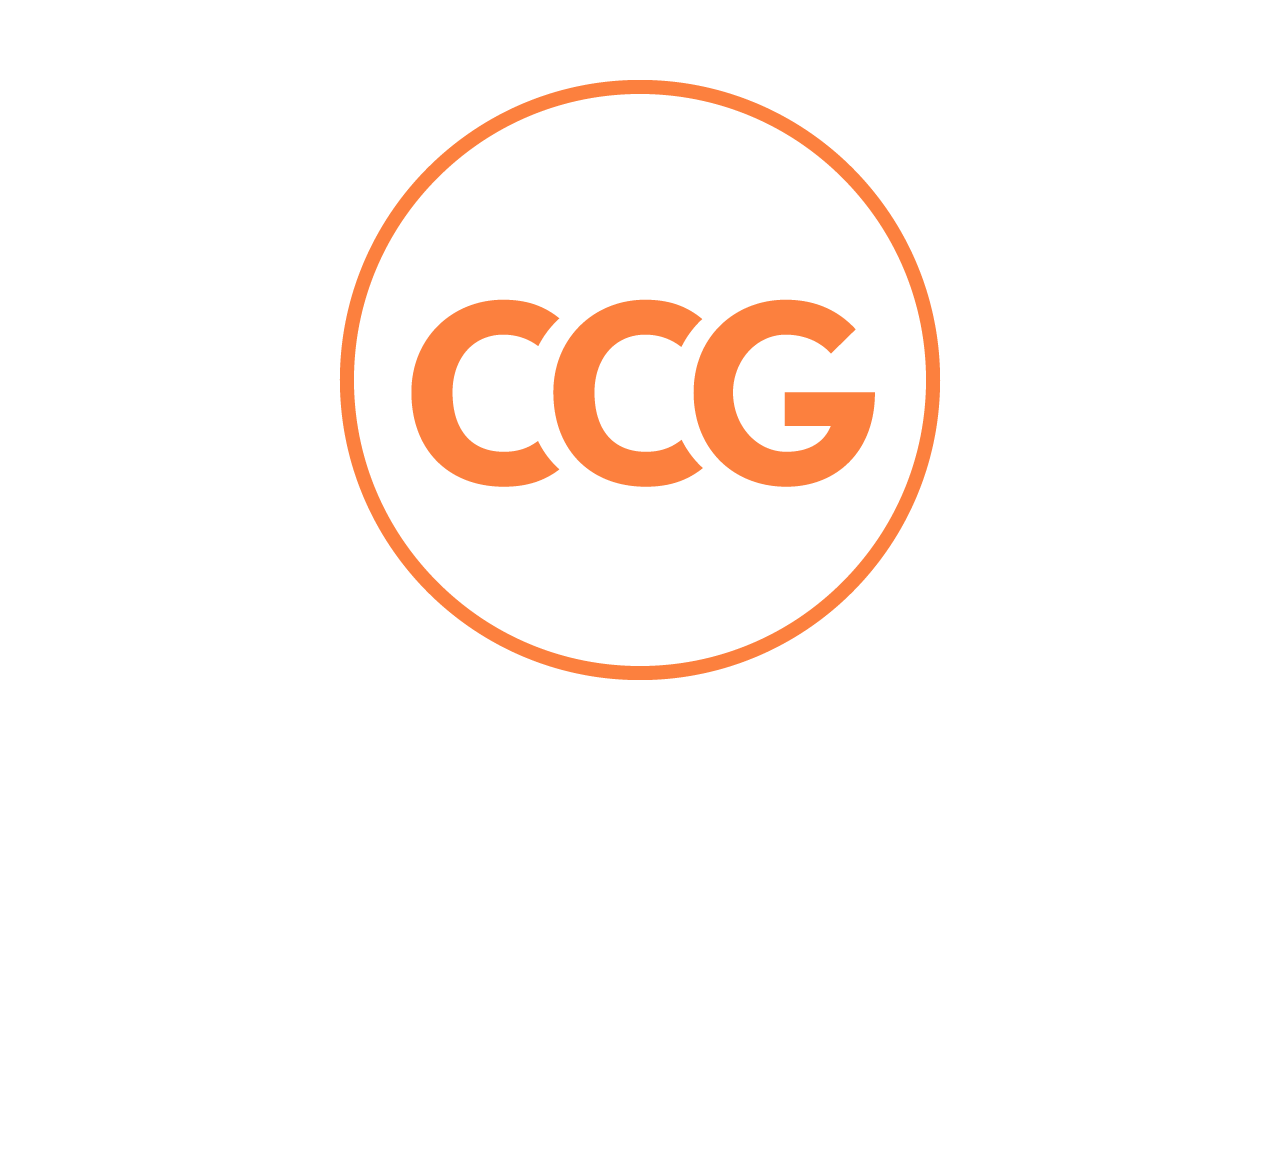 Curwood Consulting Group